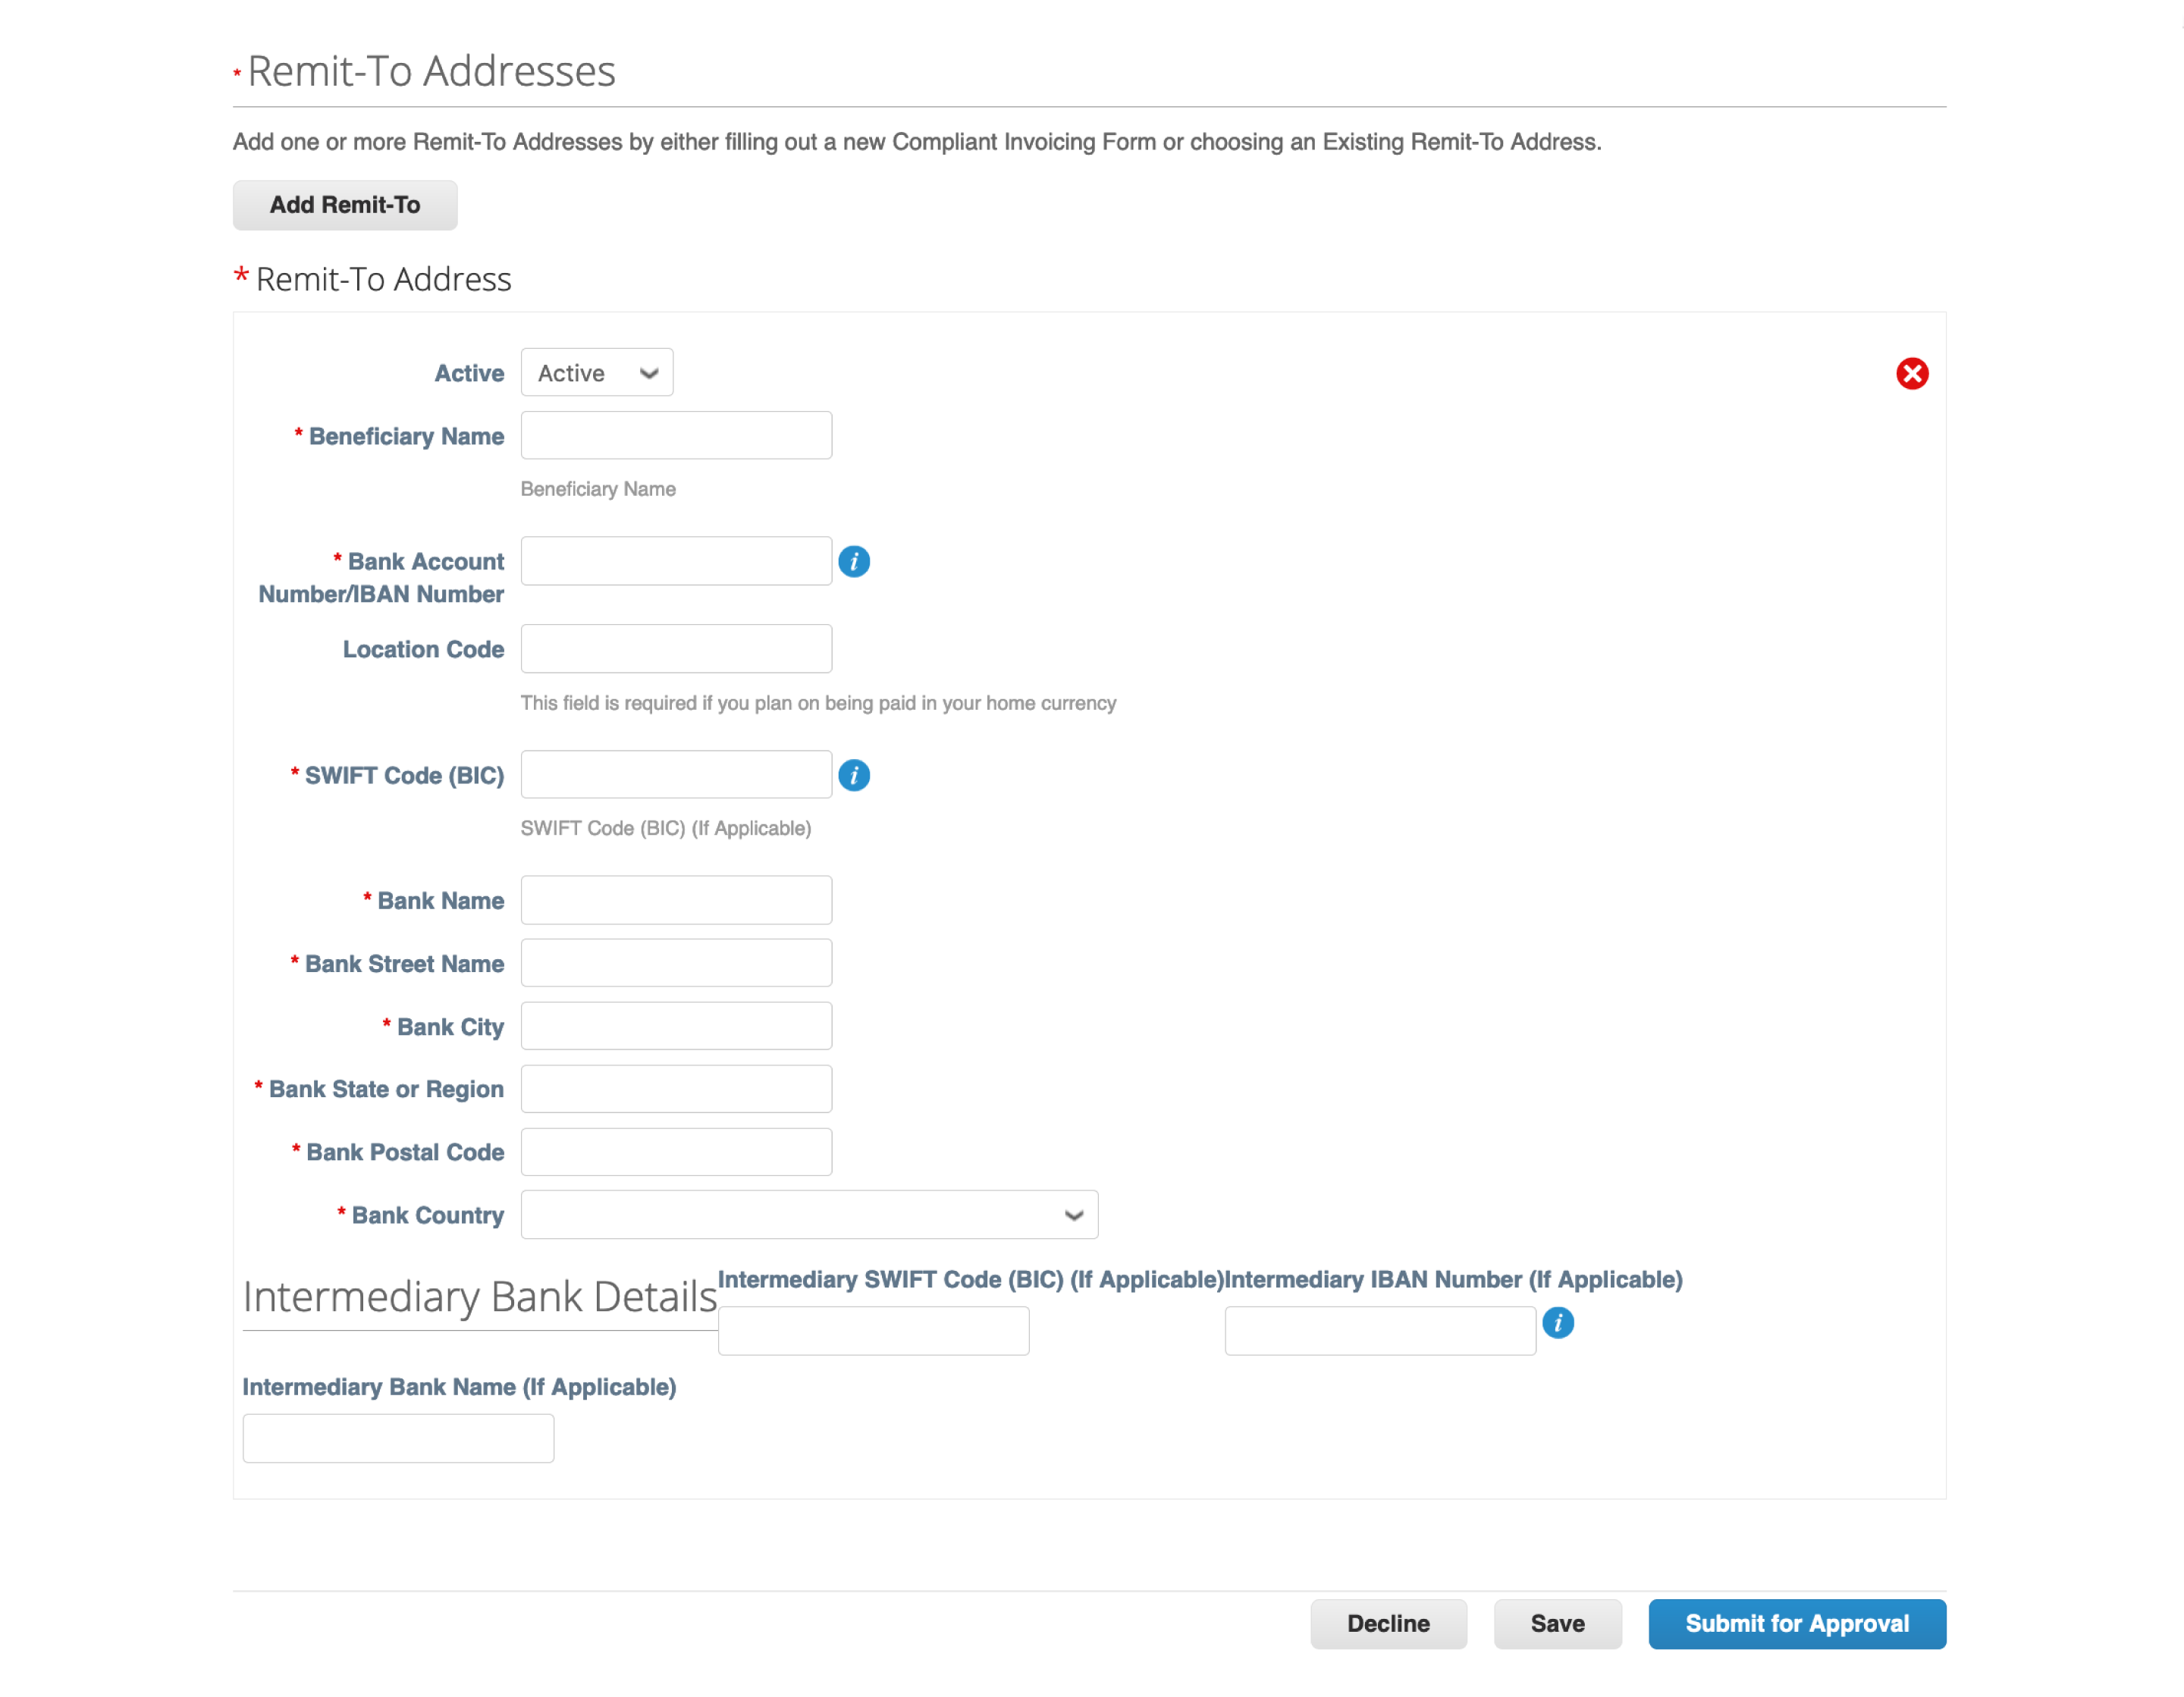 Generic Remit-To Address forms Coupa Supplier